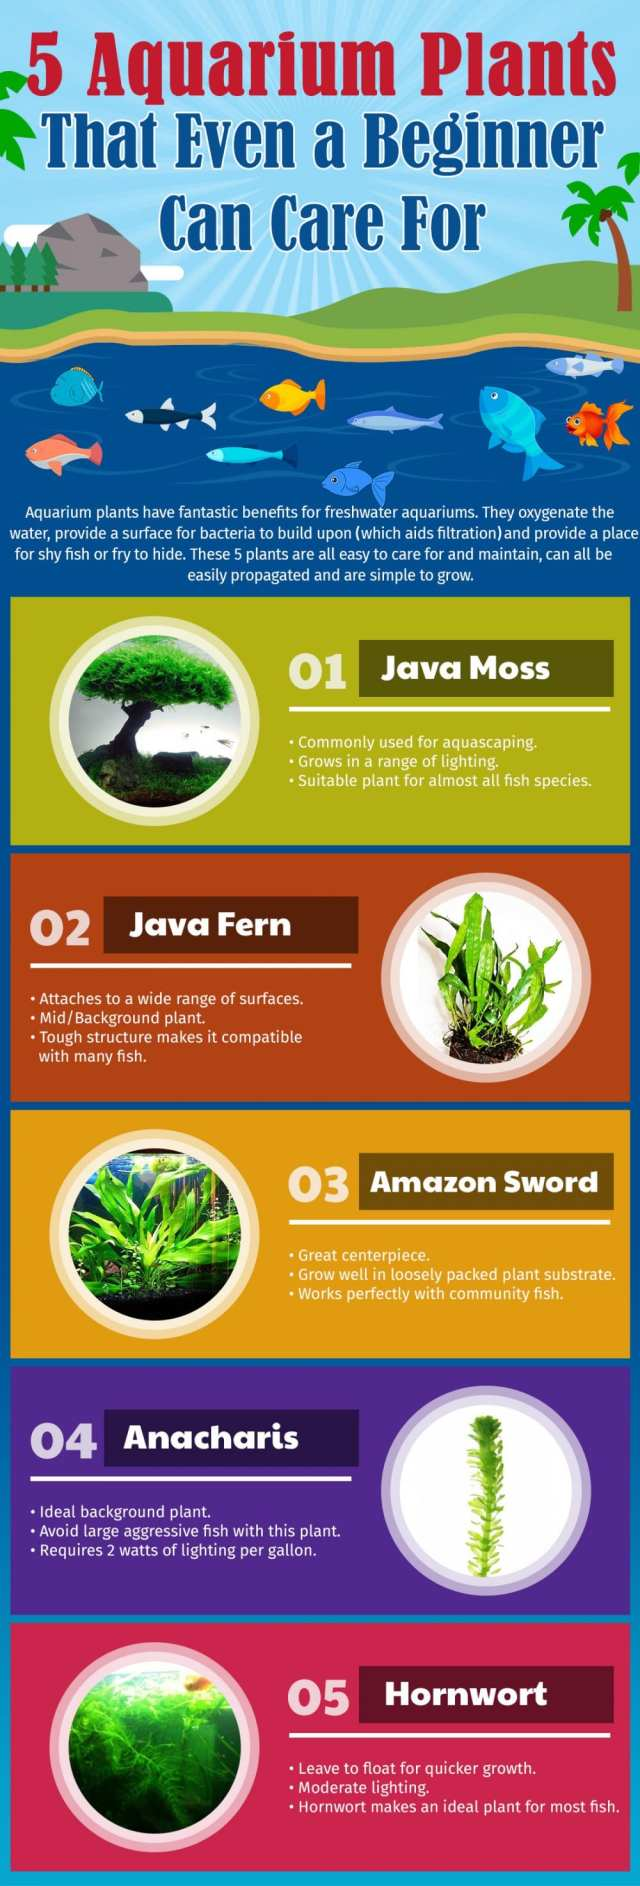 5 Live Aquarium Plants That Even a Beginner Can Care For